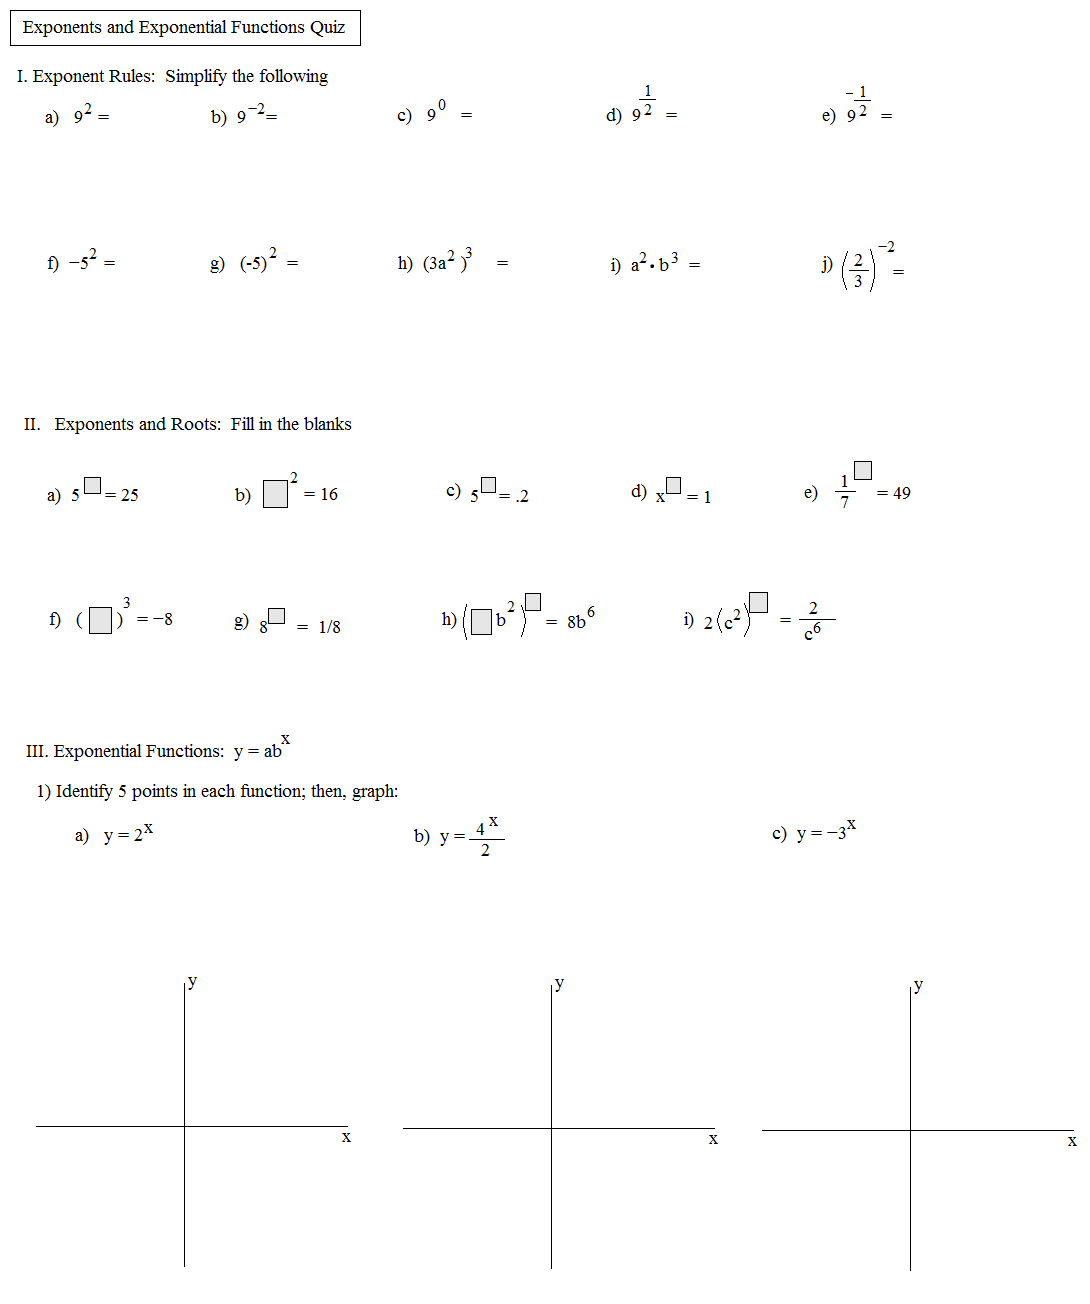 54 Marvelous Free Math Worksheets Topics Exponents Picture